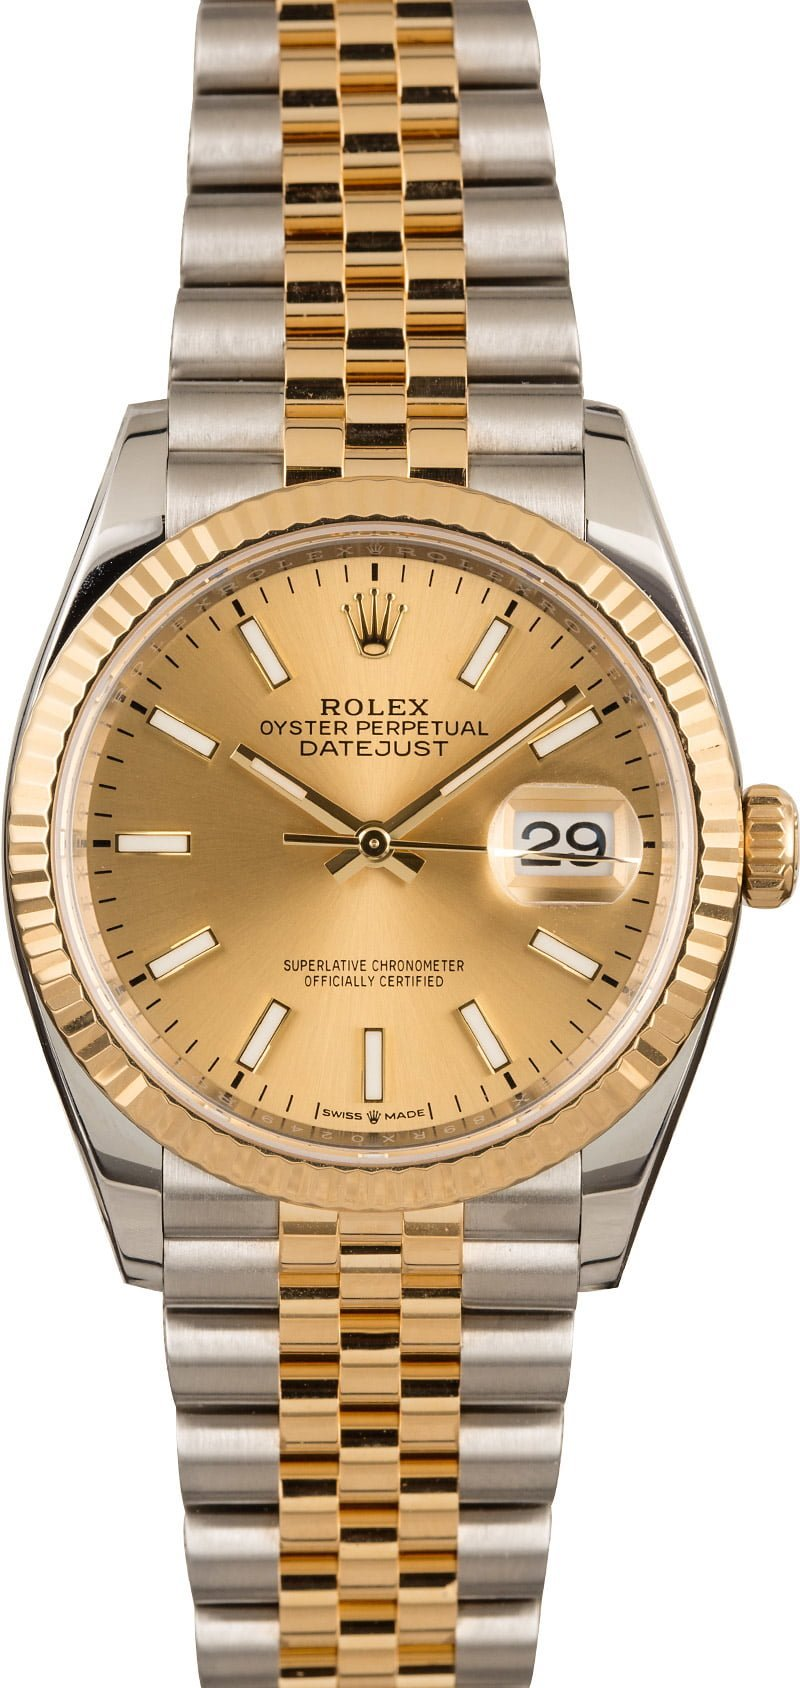 Rolex Datejust 36 Ultimate Luxury Watch Review Rolesor Two-Tone 126233